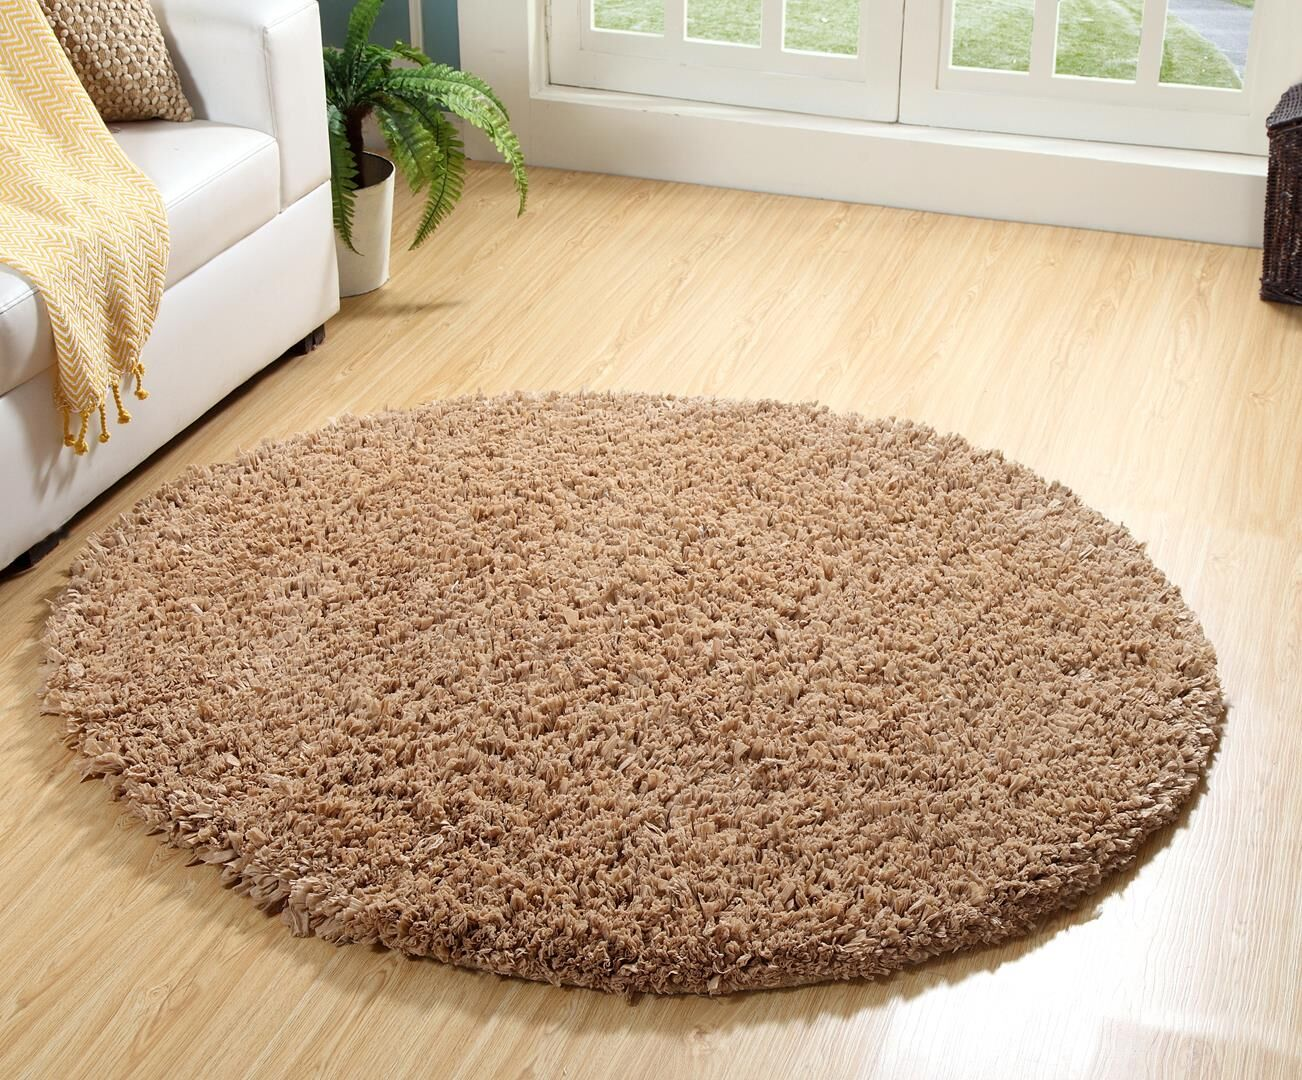 One-of-a-Kind Goodpaster Papershag Hand Woven Beige Are Rug Rug Size: Round 3'